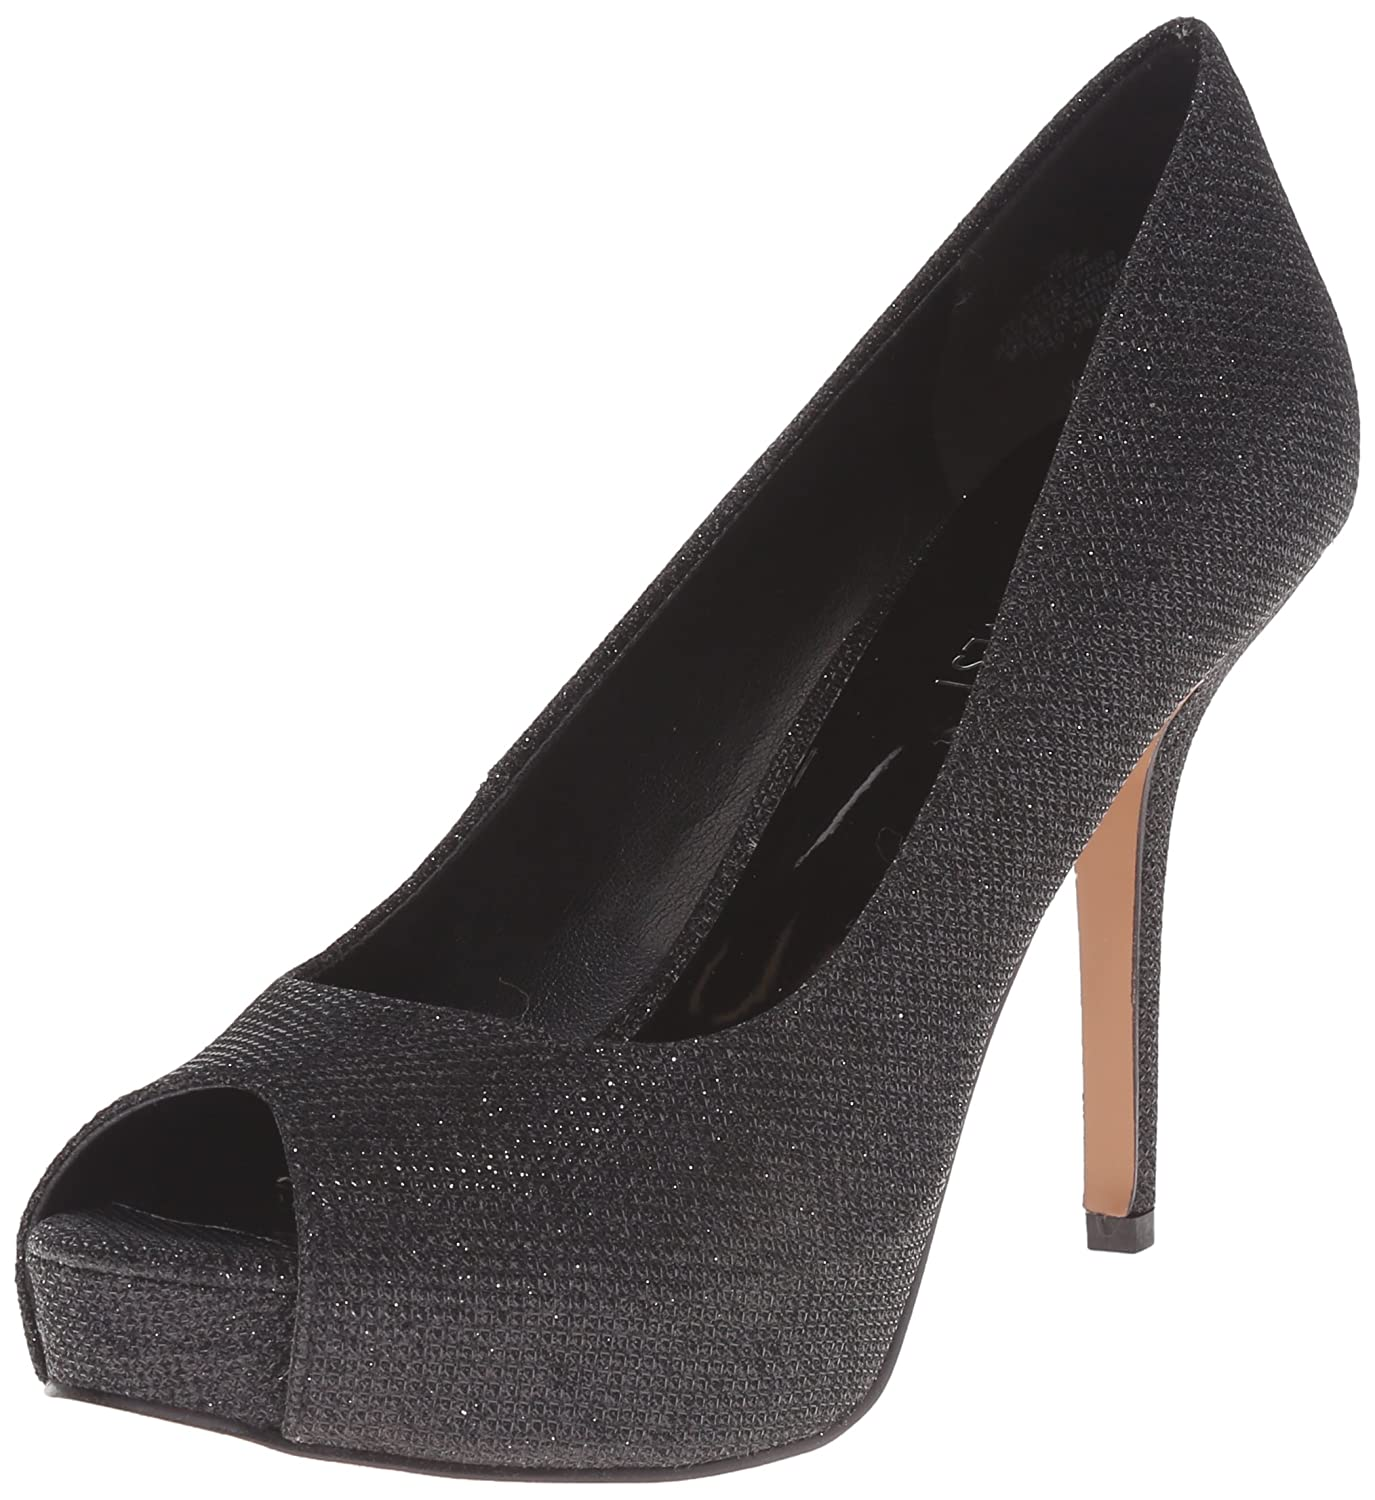 7249451aa4d8 Nine West Women s Black Pumps - 3 UK India (35.5 EU)(5 US)  Buy Online at  Low Prices in India - Amazon.in